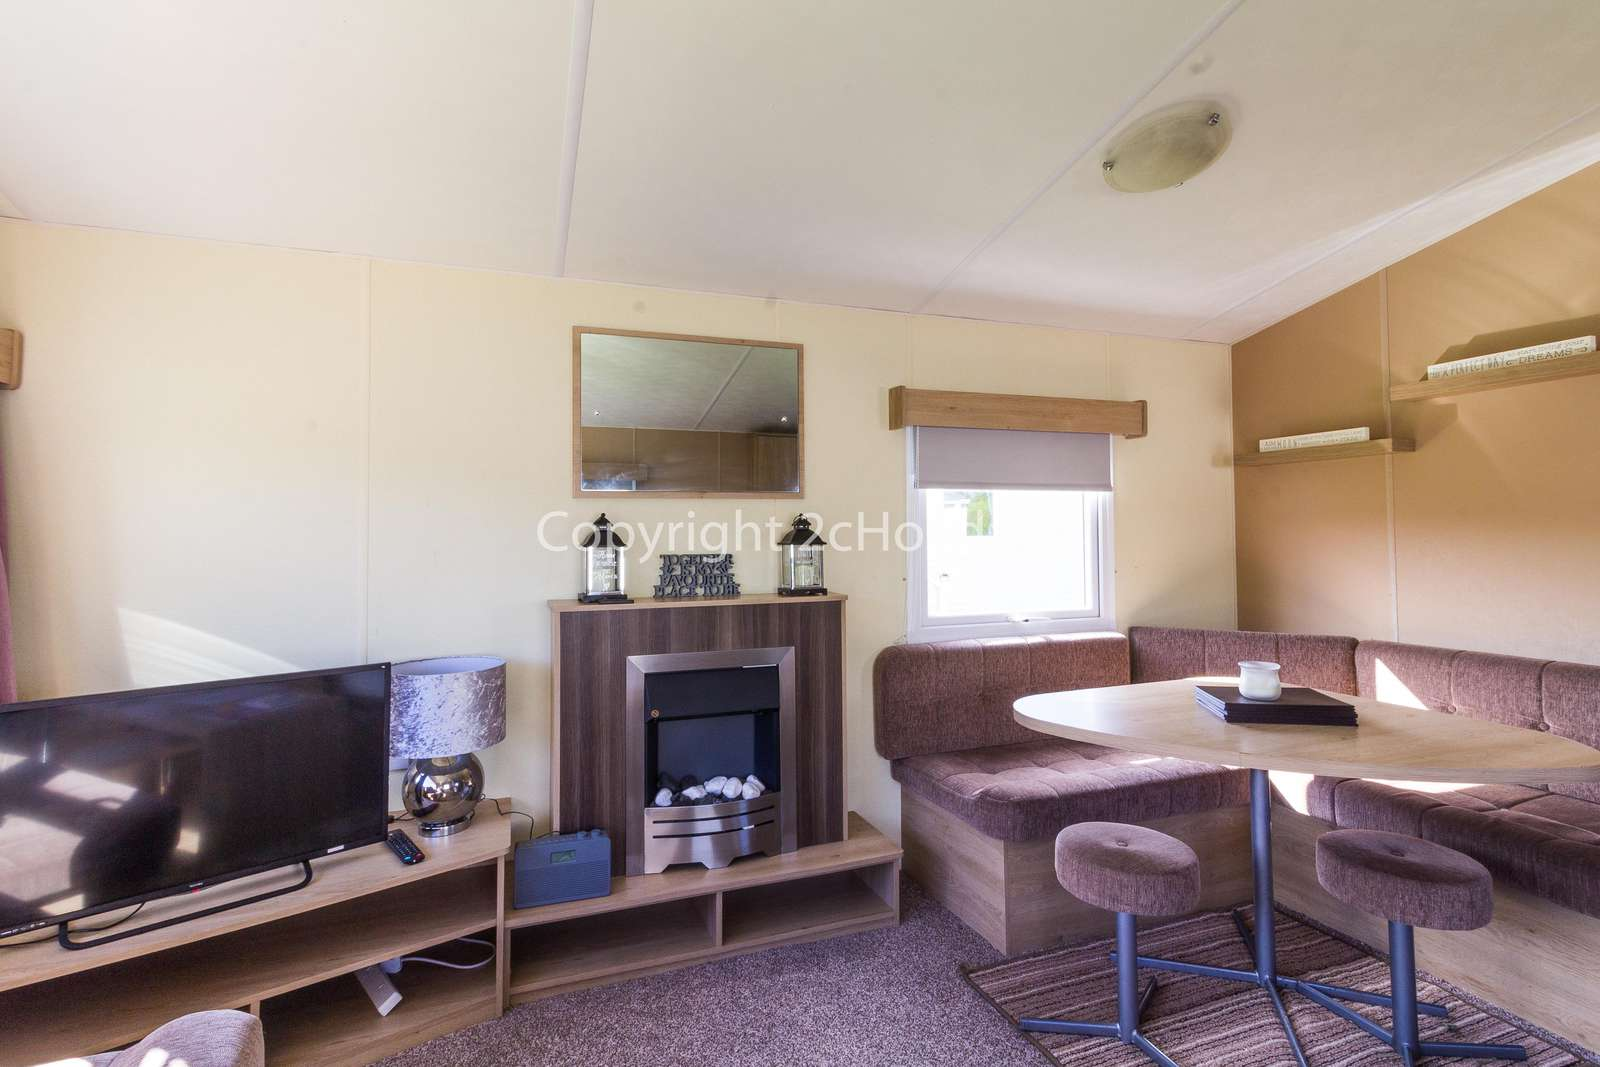 Close to on site amenities and a short drive to the lovely seaside town of Skegness.